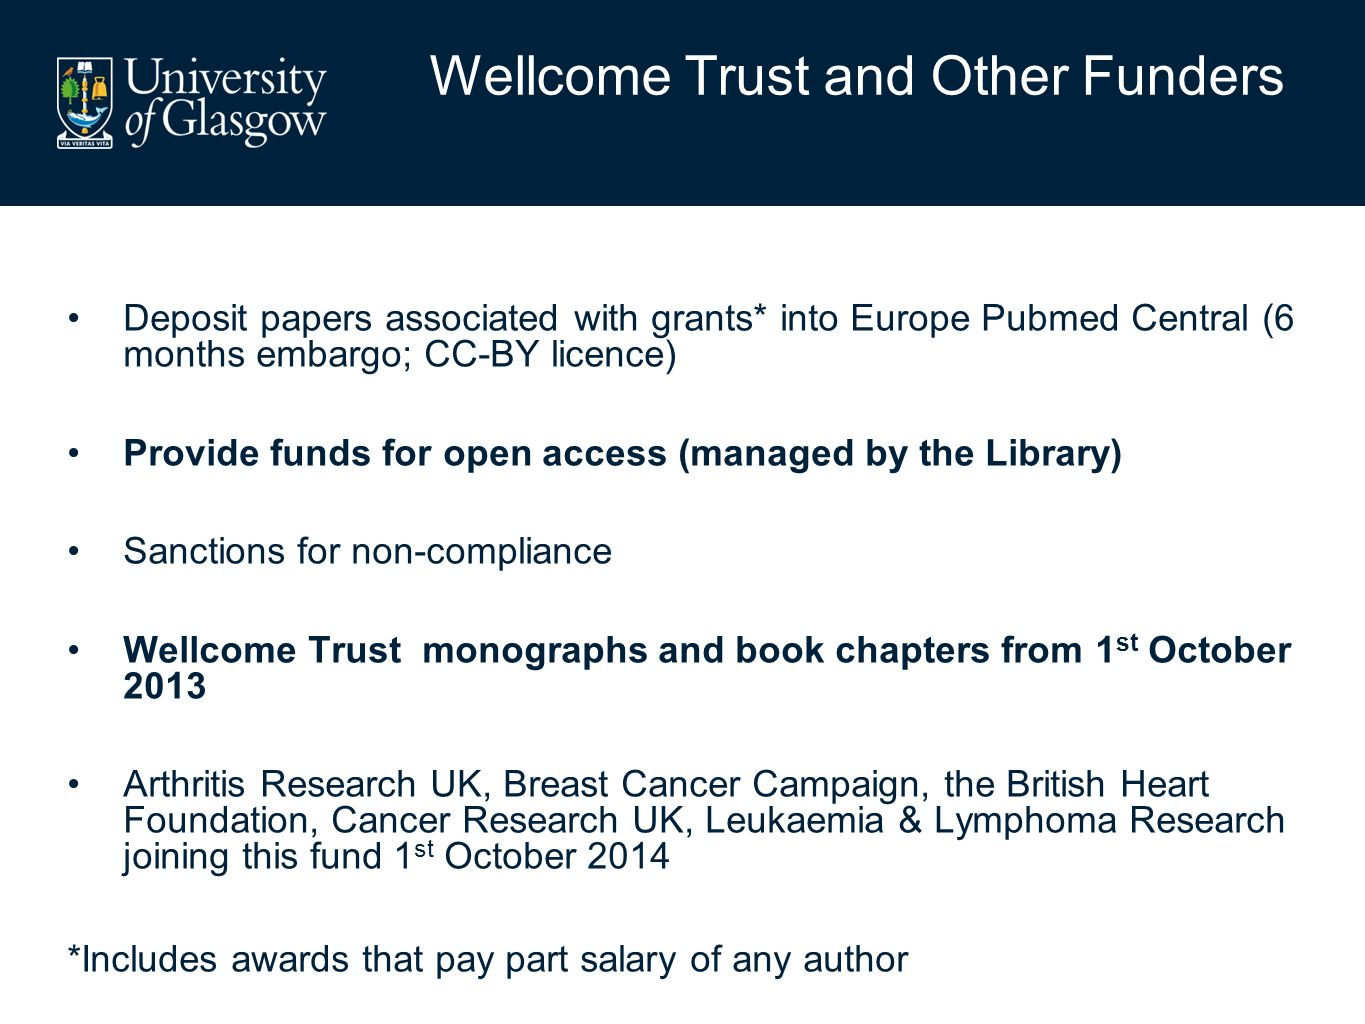 Deposit papers associated with grants* into Europe Pubmed Central (6 months embargo; CC-BY licence) Provide funds for open access (managed by the Library) Sanctions for non-compliance Wellcome Trust monographs and book chapters from 1 st October 2013 Arthritis Research UK, Breast Cancer Campaign, the British Heart Foundation, Cancer Research UK, Leukaemia & Lymphoma Research joining this fund 1 st October 2014 *Includes awards that pay part salary of any author Wellcome Trust and Other Funders